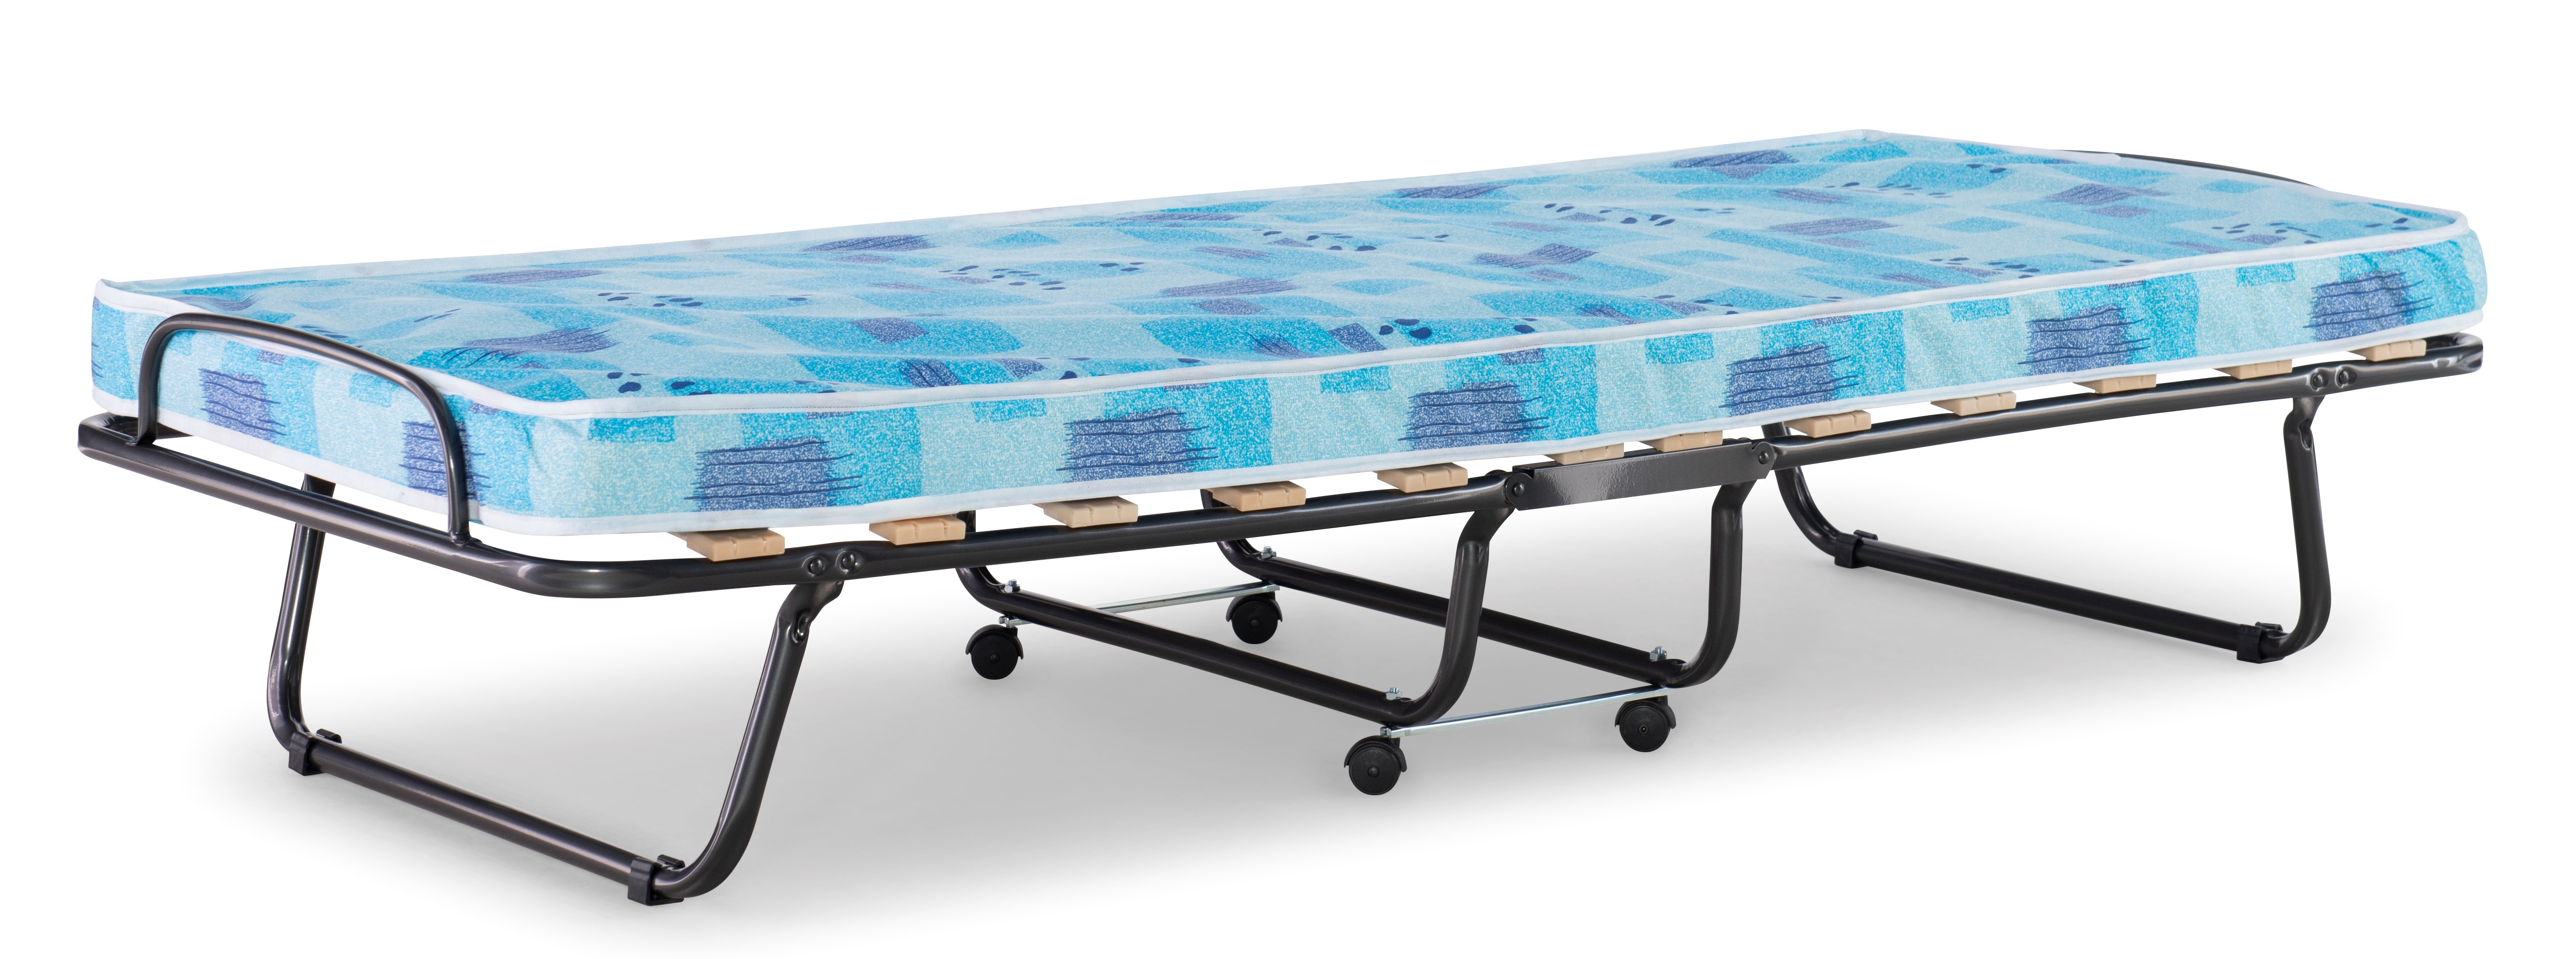 """Linon Roma Folding Rollaway Guest Bed with 4/"""" Foam Mattress Cot"""